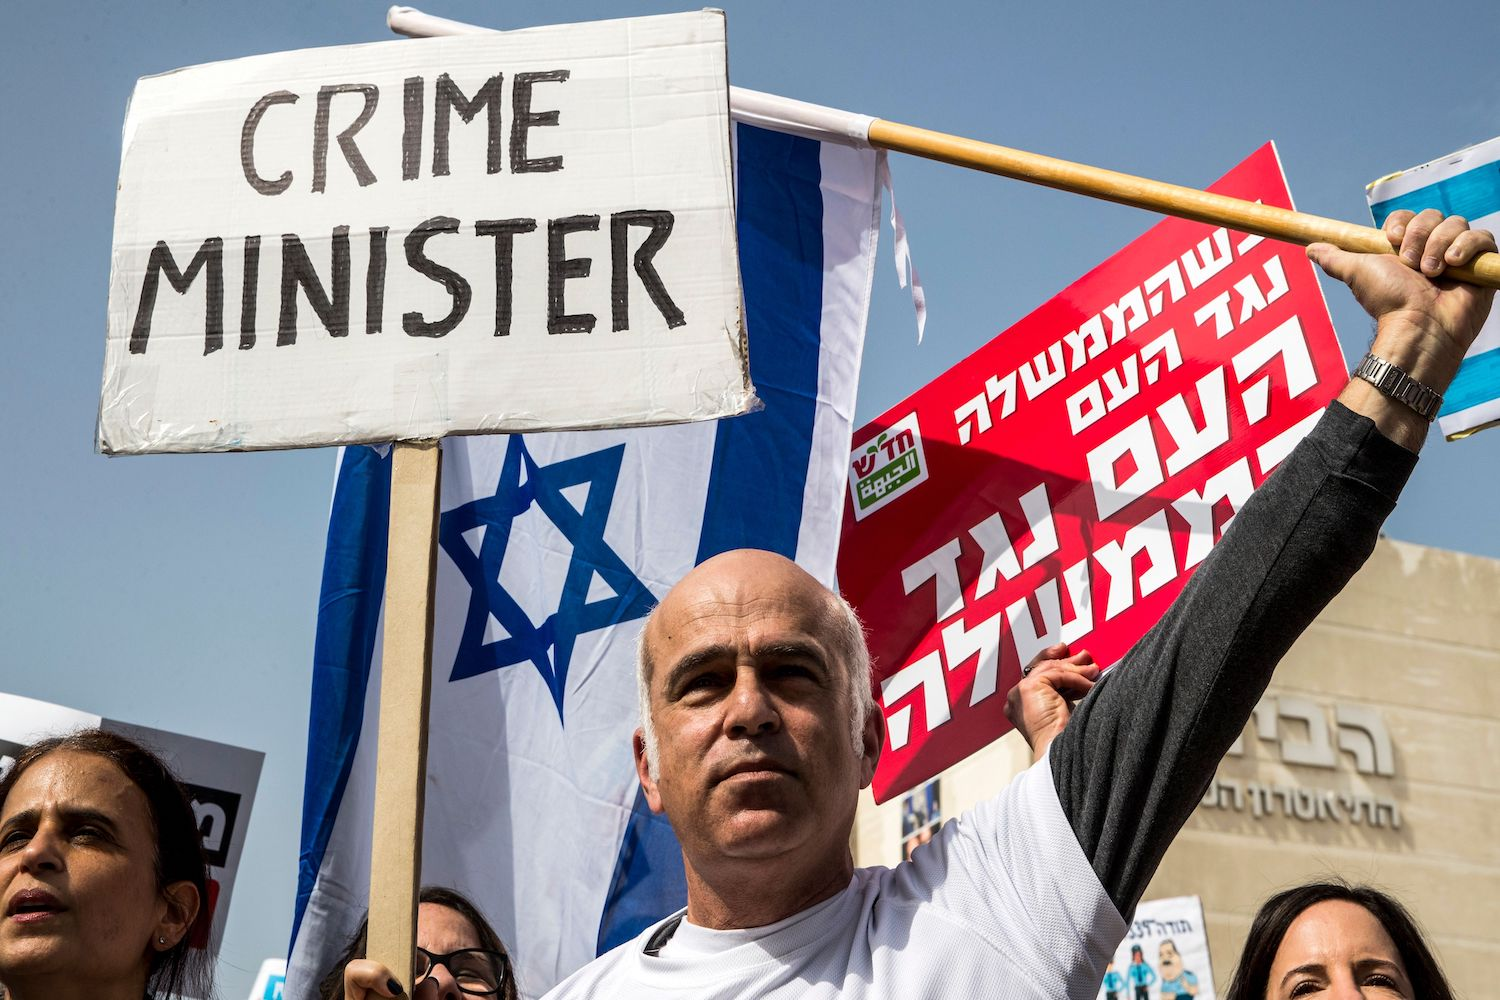 TOPSHOT - Israeli protesters raise signs as they demonstrate against Prime Minister Benjamin Netanyahu in the wake of police recommendations to indict corruption, in the coastal city of Tel Aviv on February 16, 2018. / AFP PHOTO / JACK GUEZ        (Photo credit should read JACK GUEZ/AFP/Getty Images)